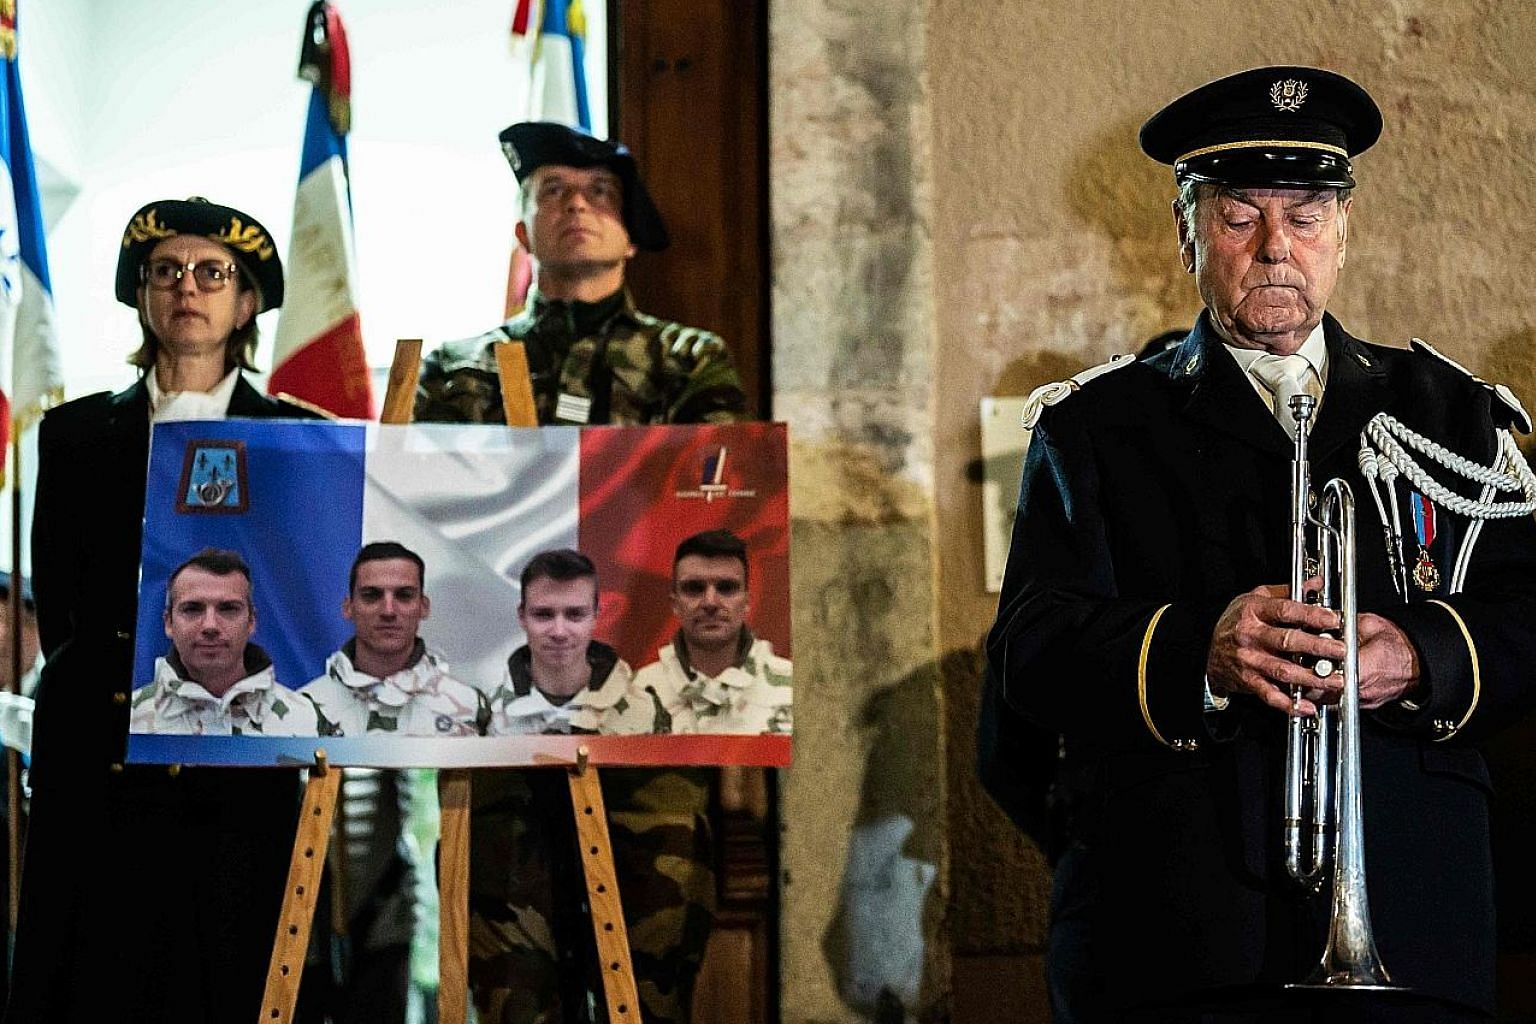 French soldiers in the south-eastern town of Gap paying tribute to their fallen comrades who died in Mali on Monday.